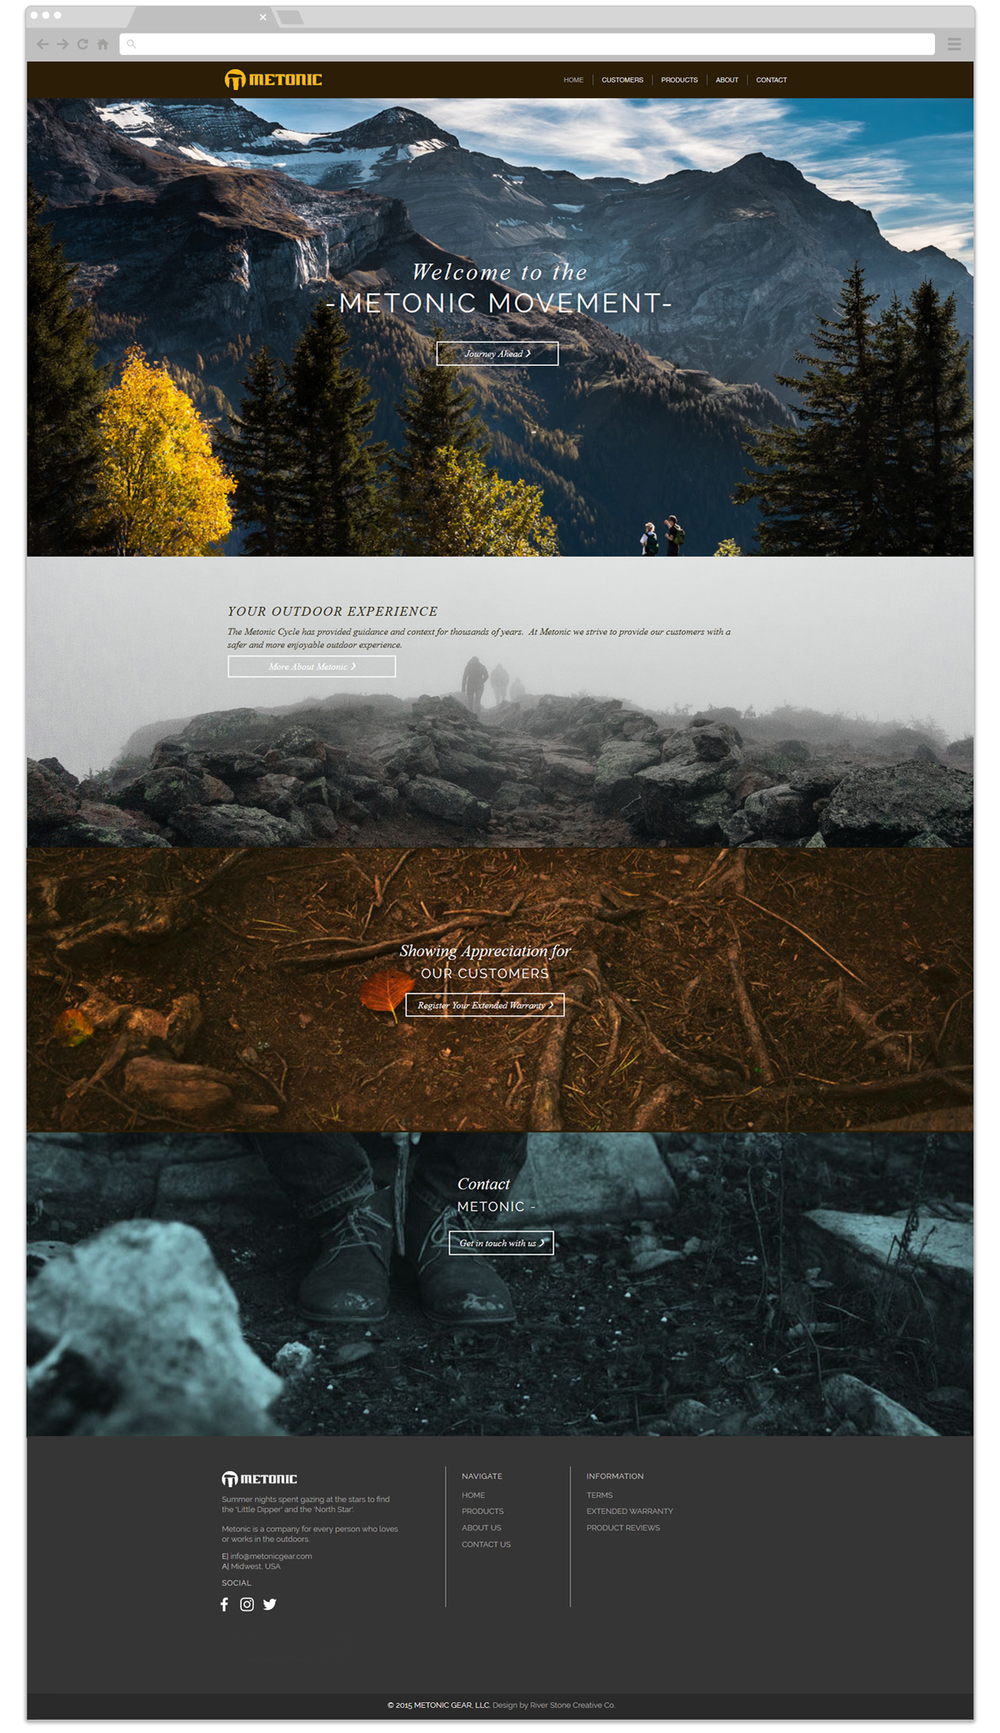 River-Stone-Creative-Co-Websites-Metonic-Gear